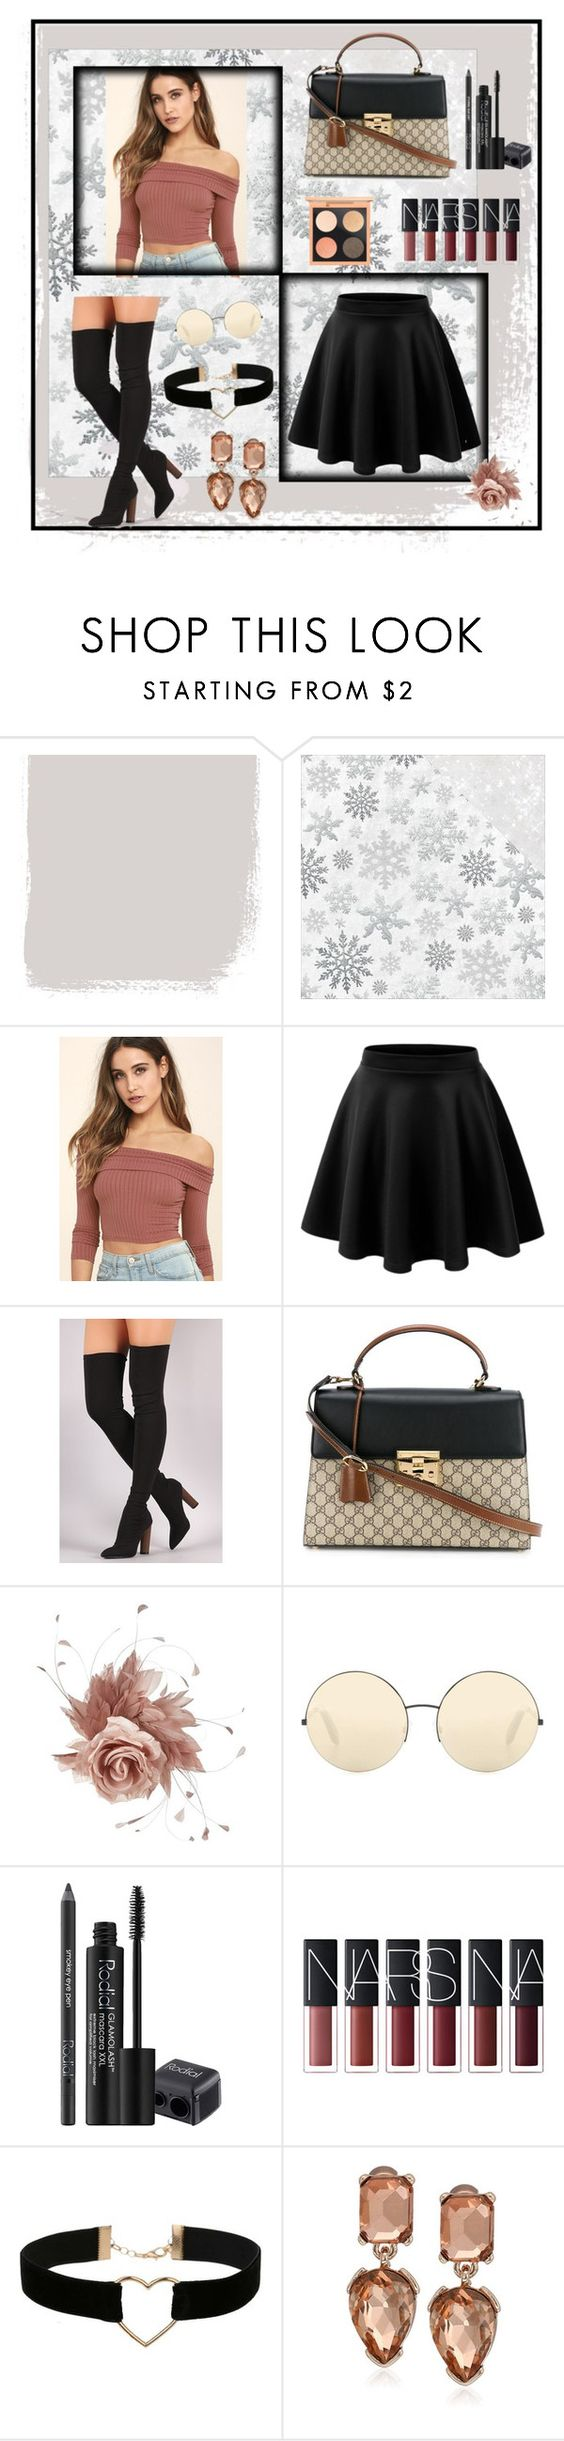 """""""cllasic"""" by sadeta-v ❤ liked on Polyvore featuring Kaisercraft, LULUS, Gucci, NERIDA FRAIMAN, Victoria Beckham, Rodial, Miss Selfridge and Kenneth Cole"""